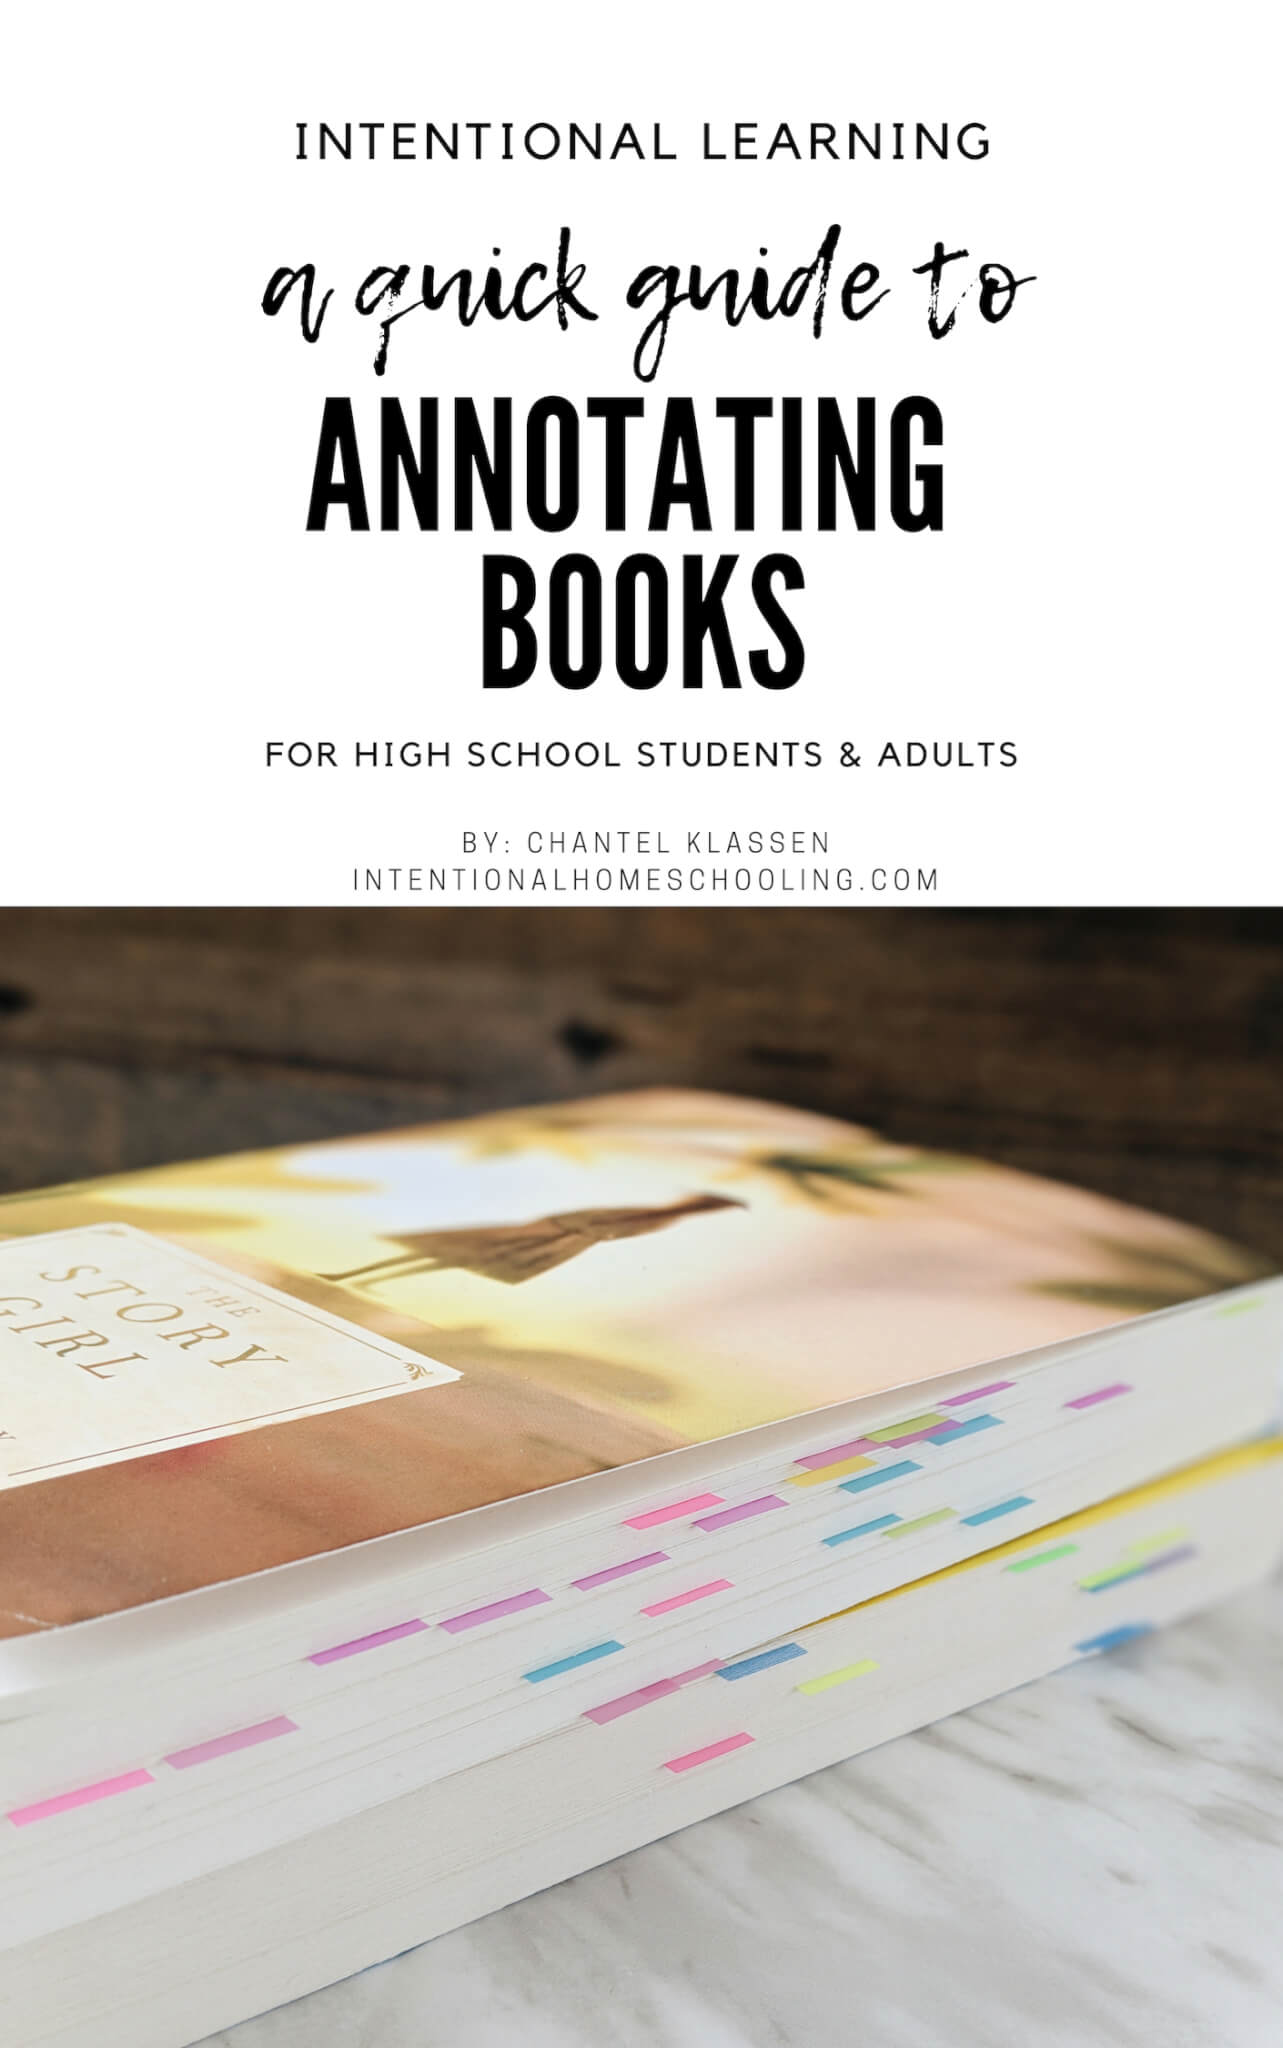 A Quick Guide to Annotating Books for Students and Adults